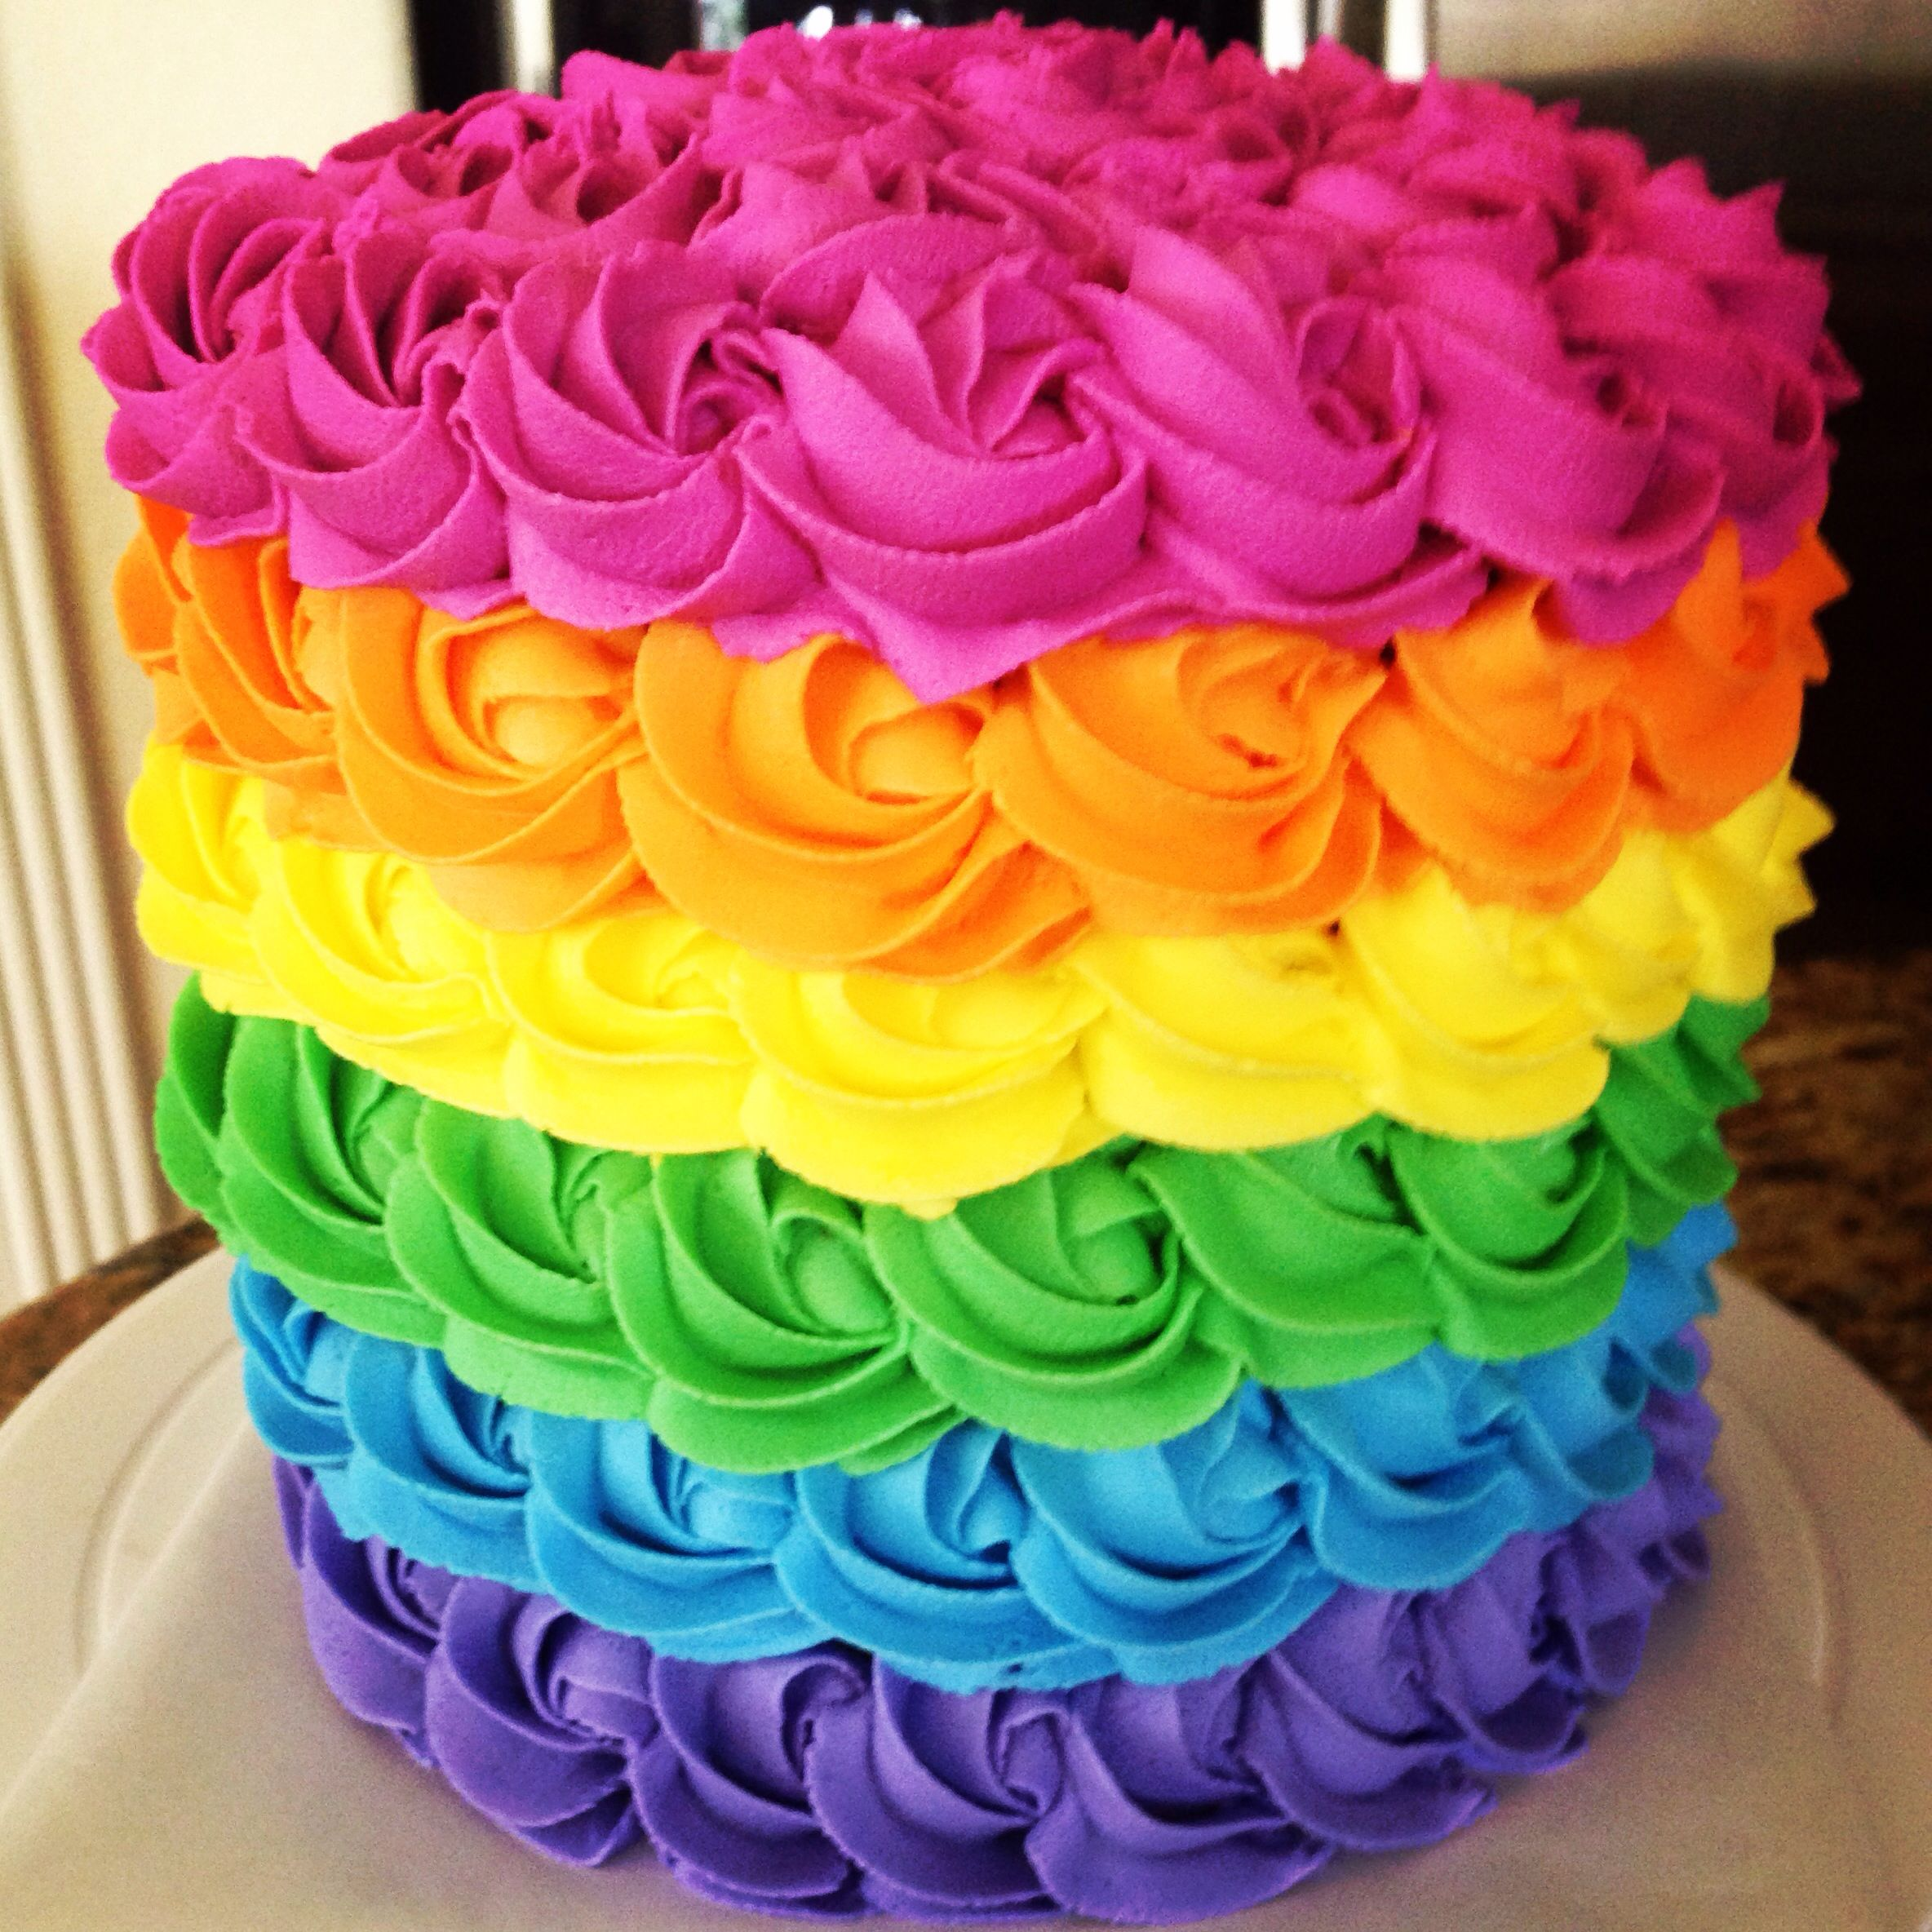 Rainbow cake 2 Stunning inside and out Moist almond colorful cake